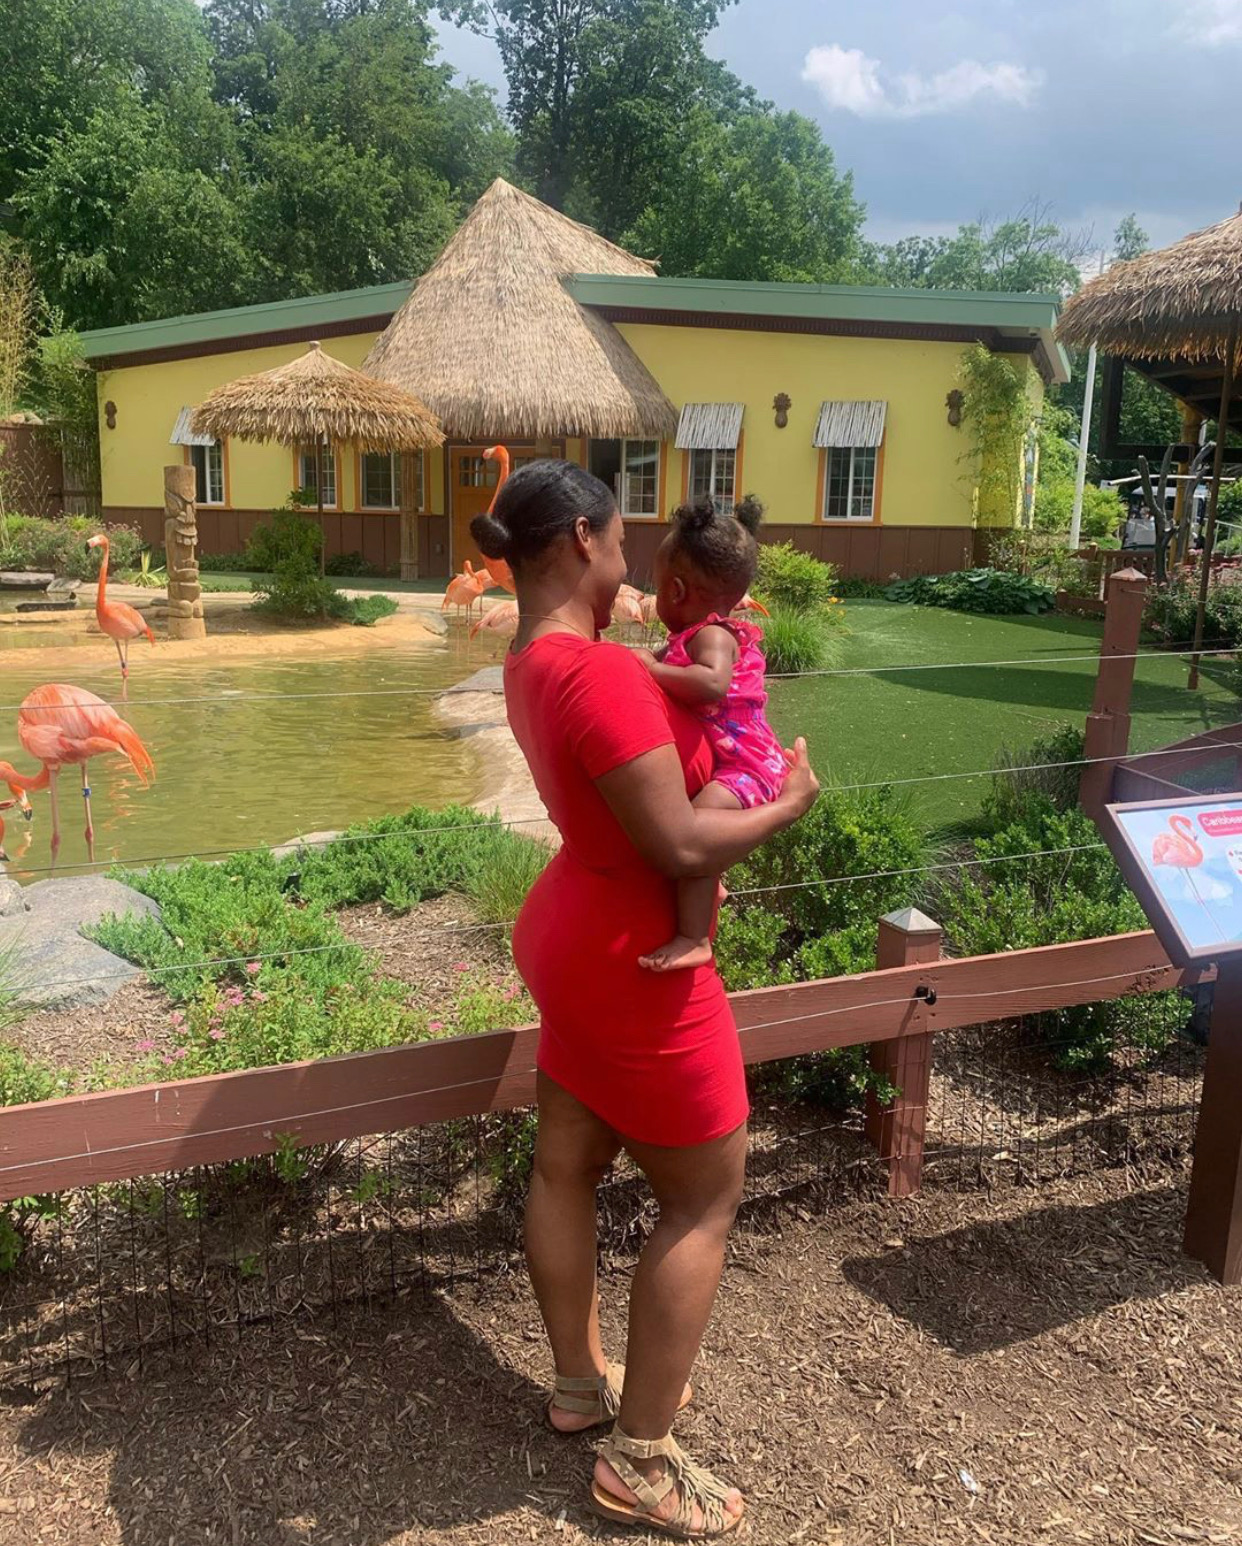 NJ Attractions, turtleback zoo indoor water park aquarium Camden zoo cape may things to do nj visiting places tourist attractions New Jersey kid attractions in nj